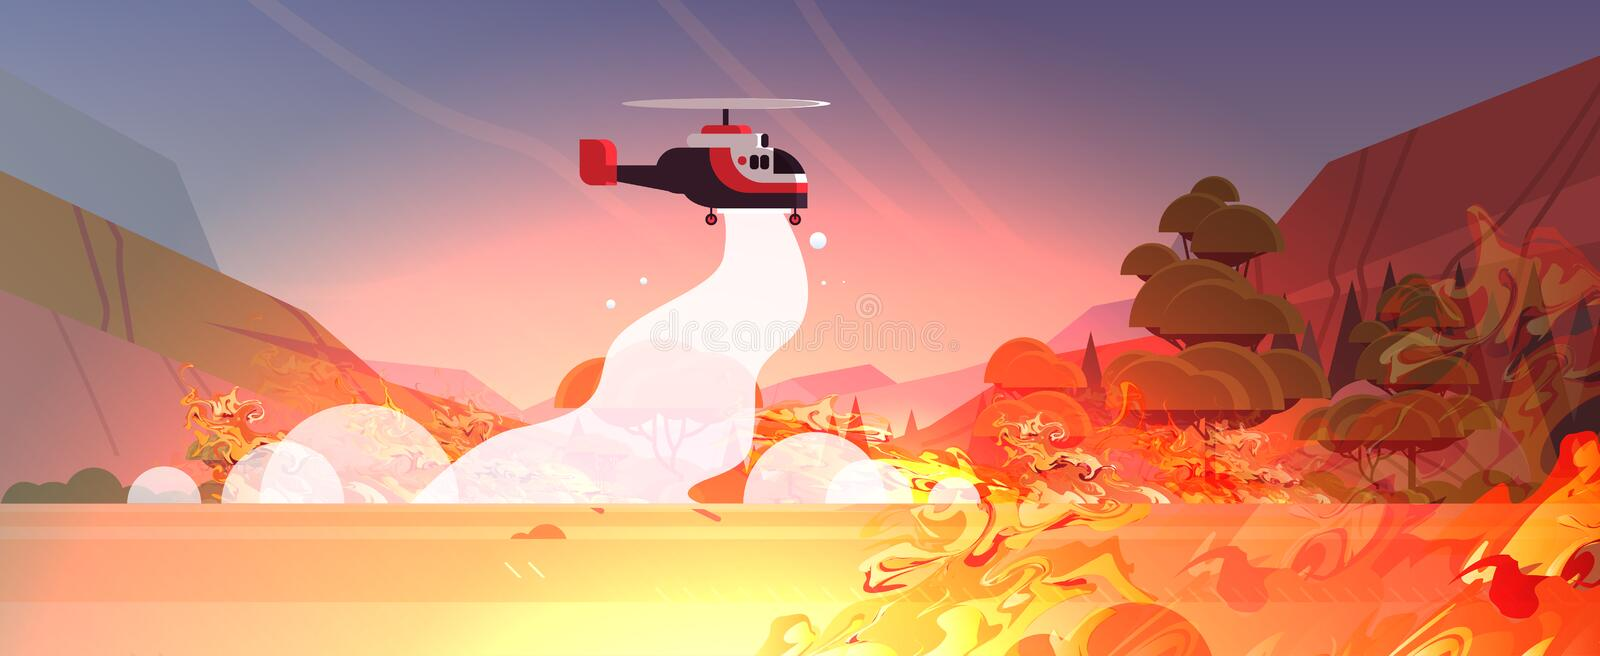 Helicopter extinguishes dangerous wildfire in australia fighting bush fire dry woods burning trees firefighting natural. Disaster concept intense orange flames vector illustration